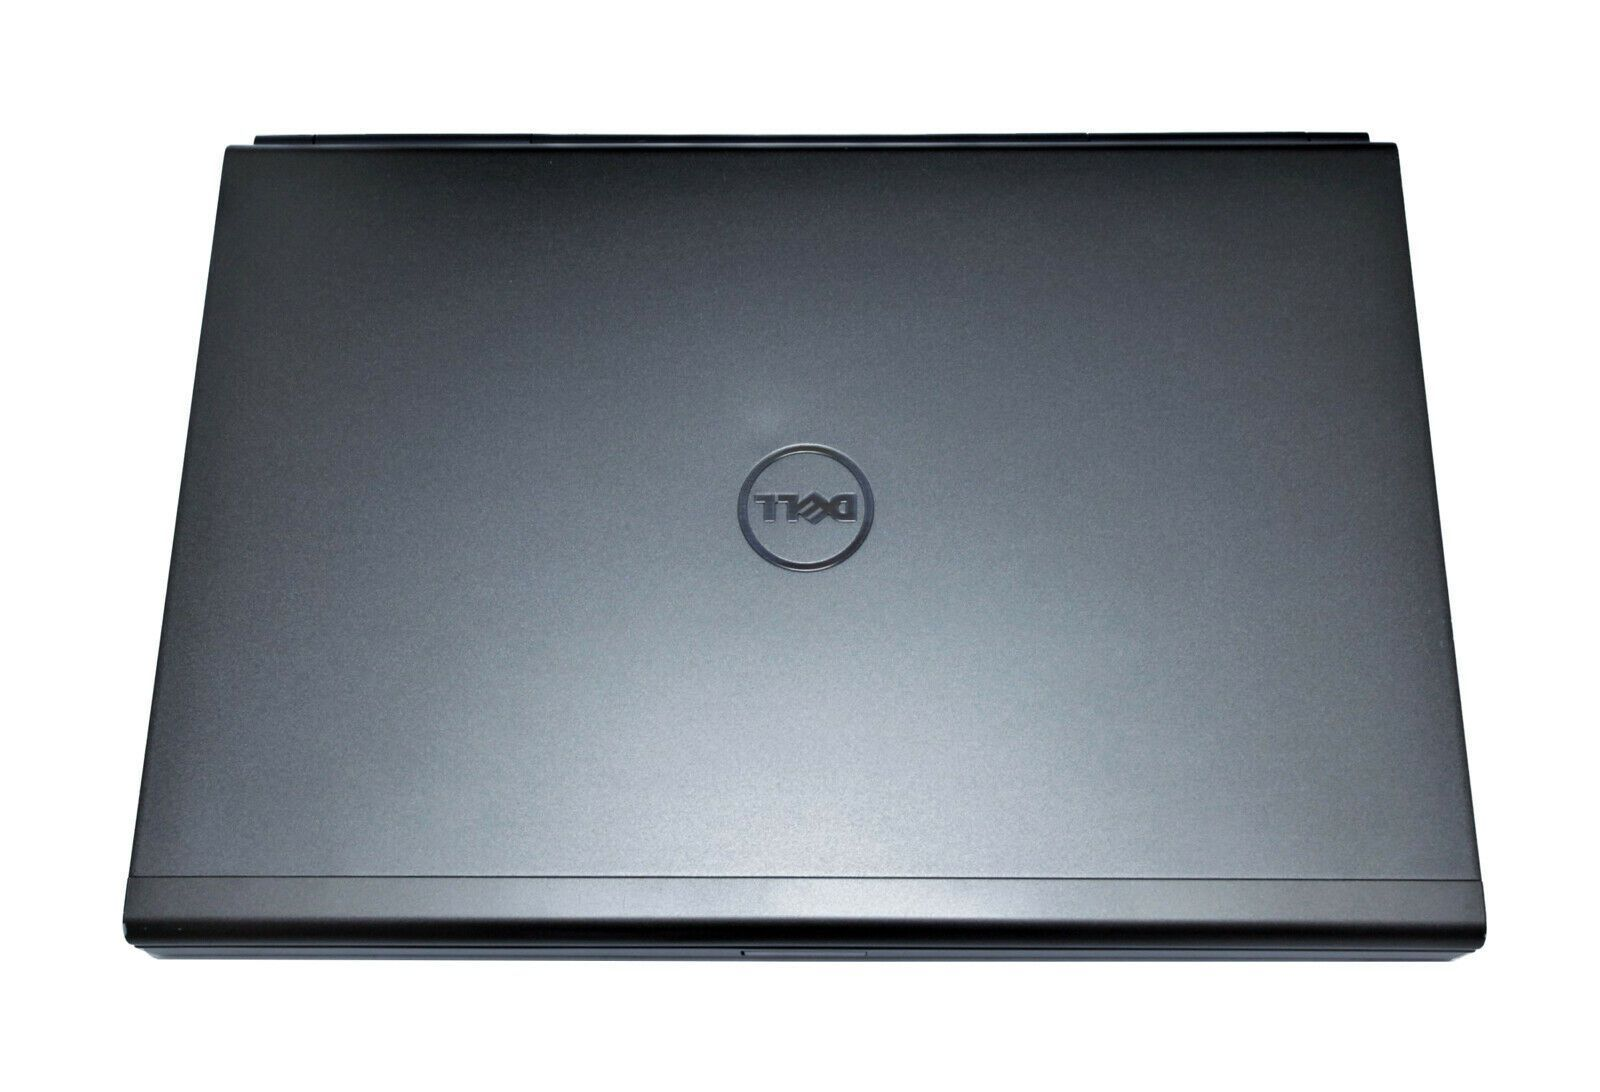 Dell Precision M4800 CAD 15.6 Laptop: Core i7-4810MQ, 16GB, 240GB SSD, VAT - CruiseTech